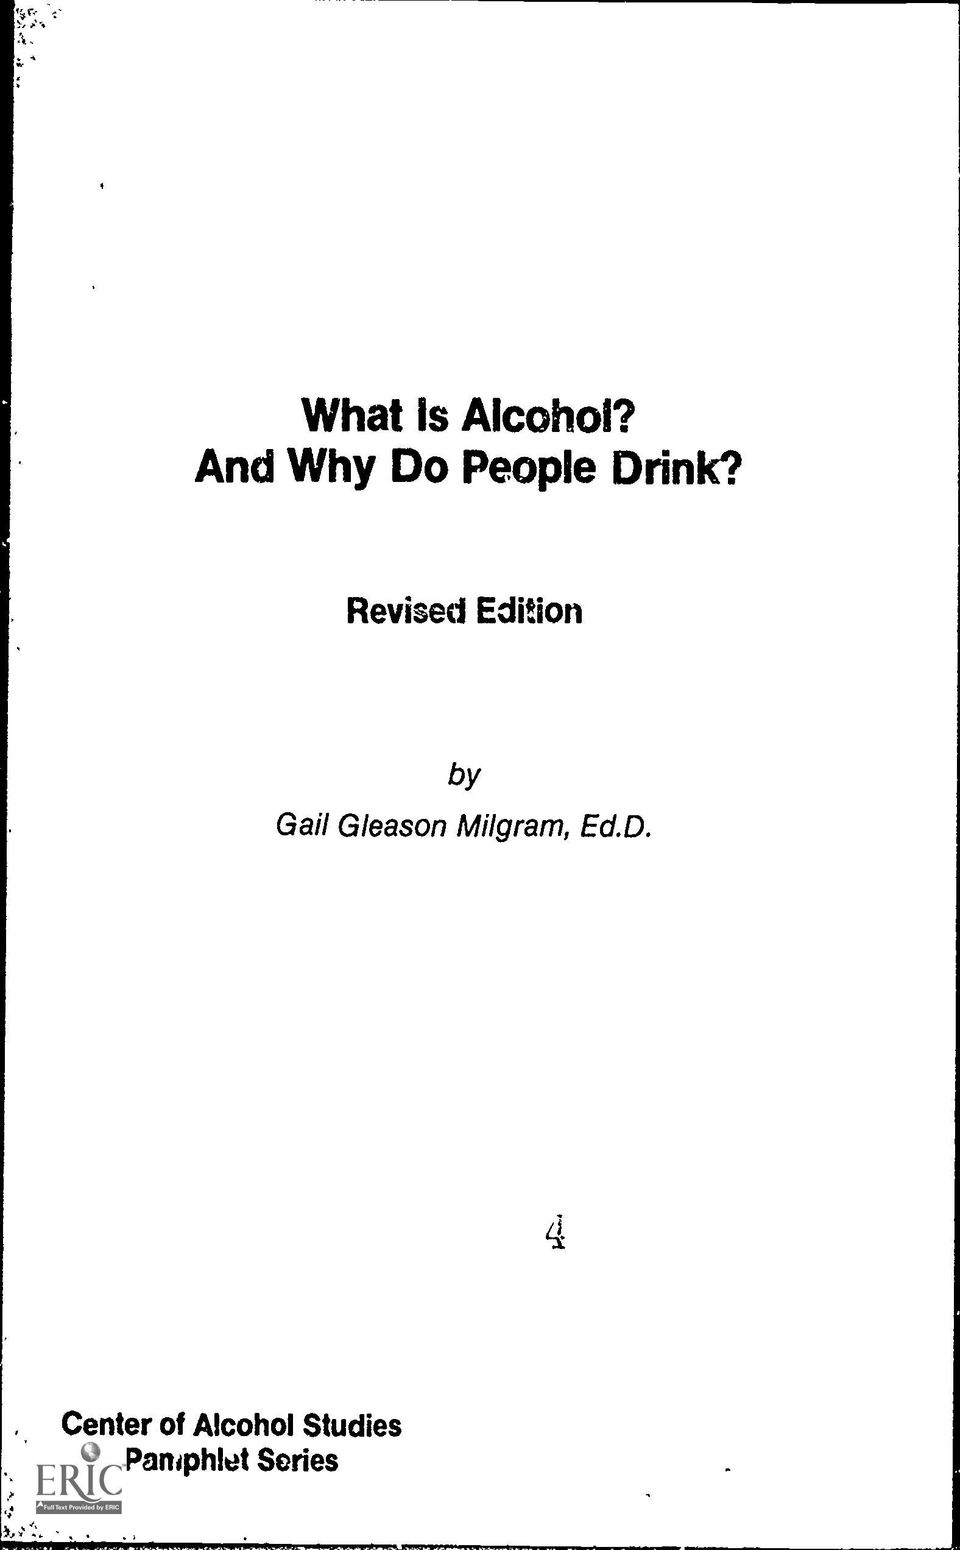 Revised Edition by Gail Gleason